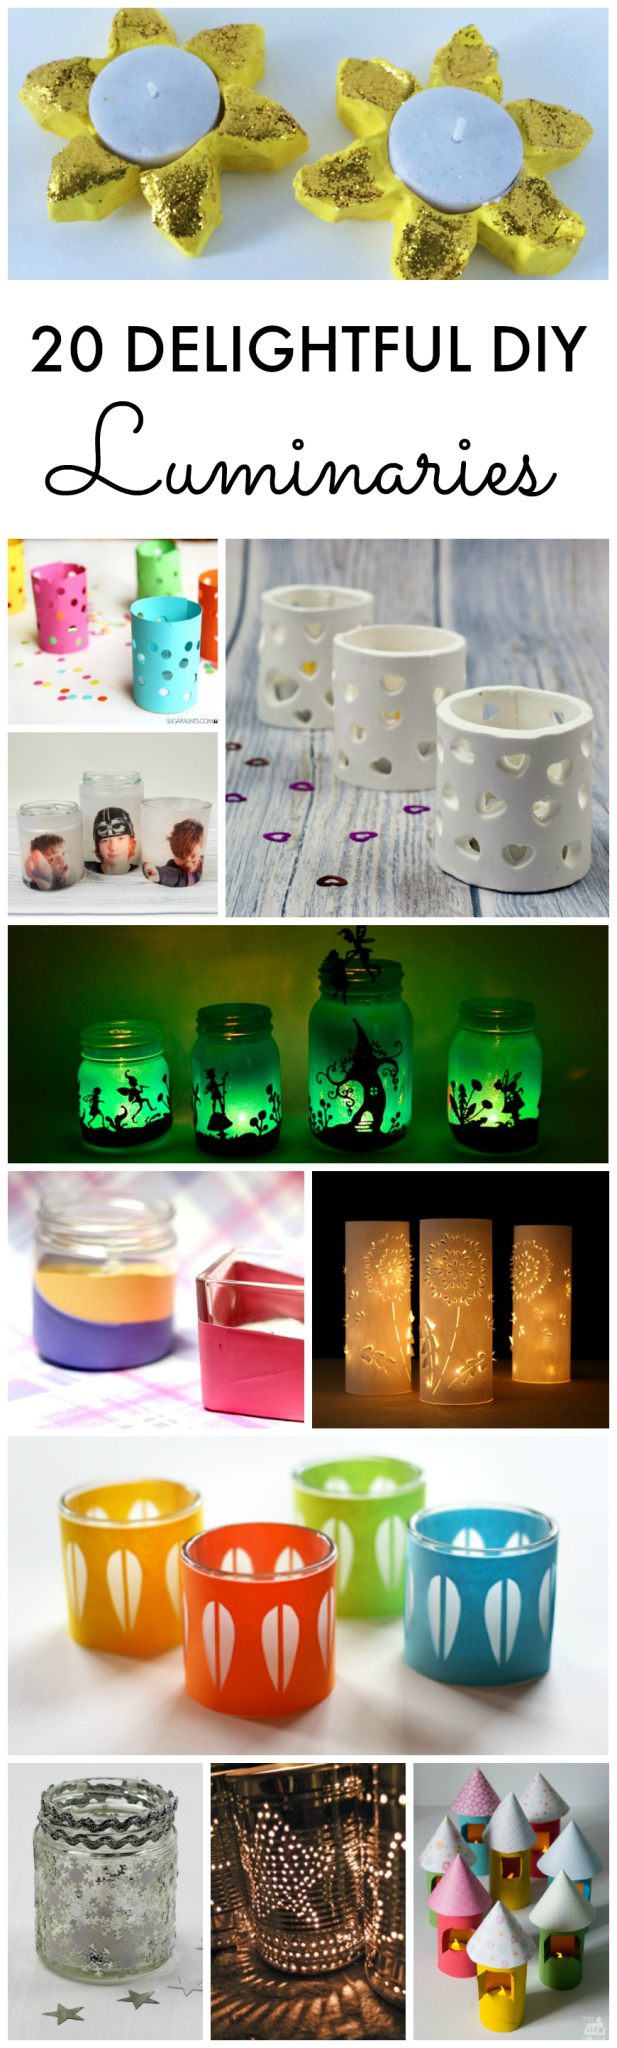 20 Delightful DIY Candle Holders and Luminaries. Brighten up even the darkest night with these beautiful DIY crafts for all year round.